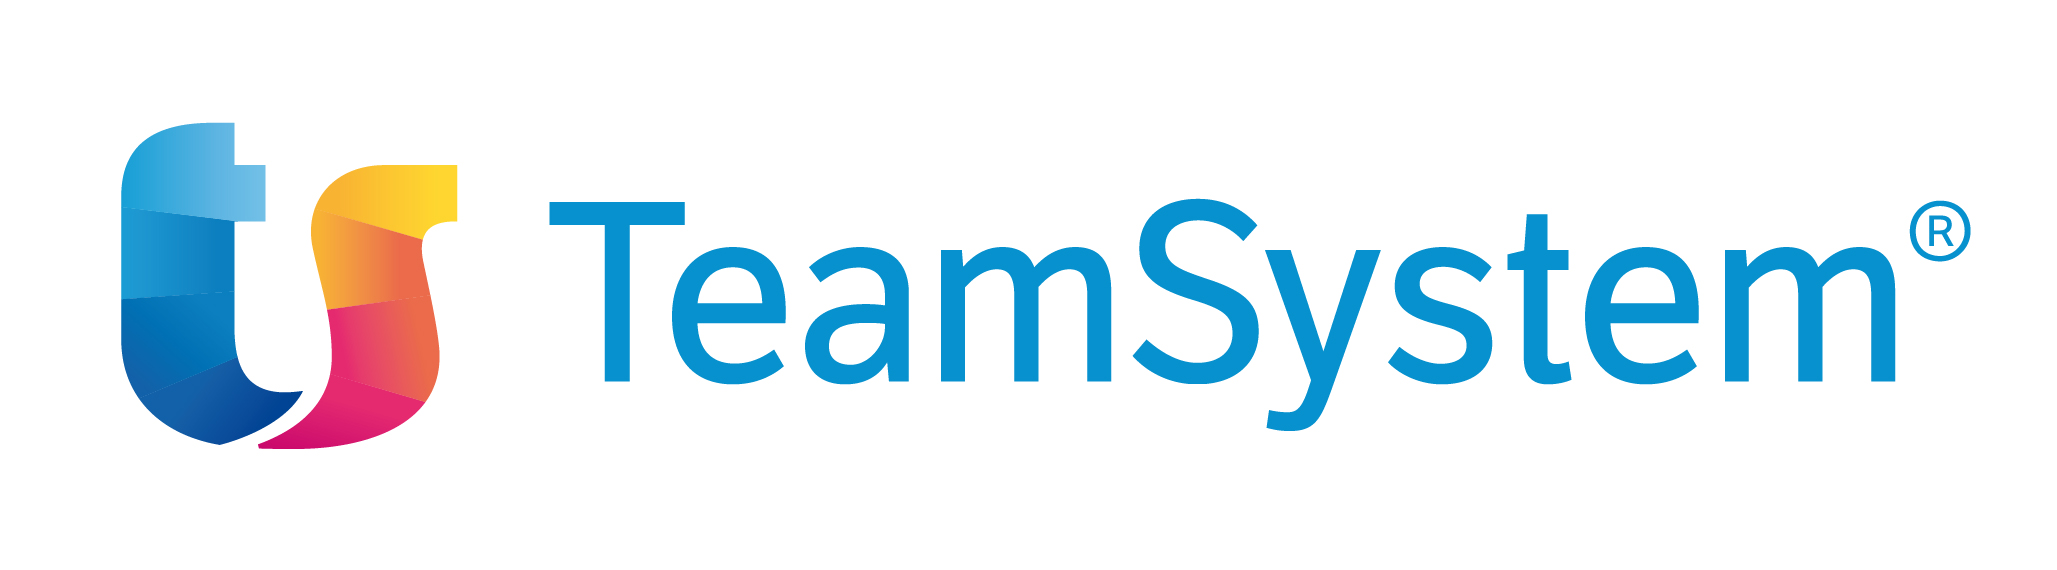 teamsystem_spa_logo